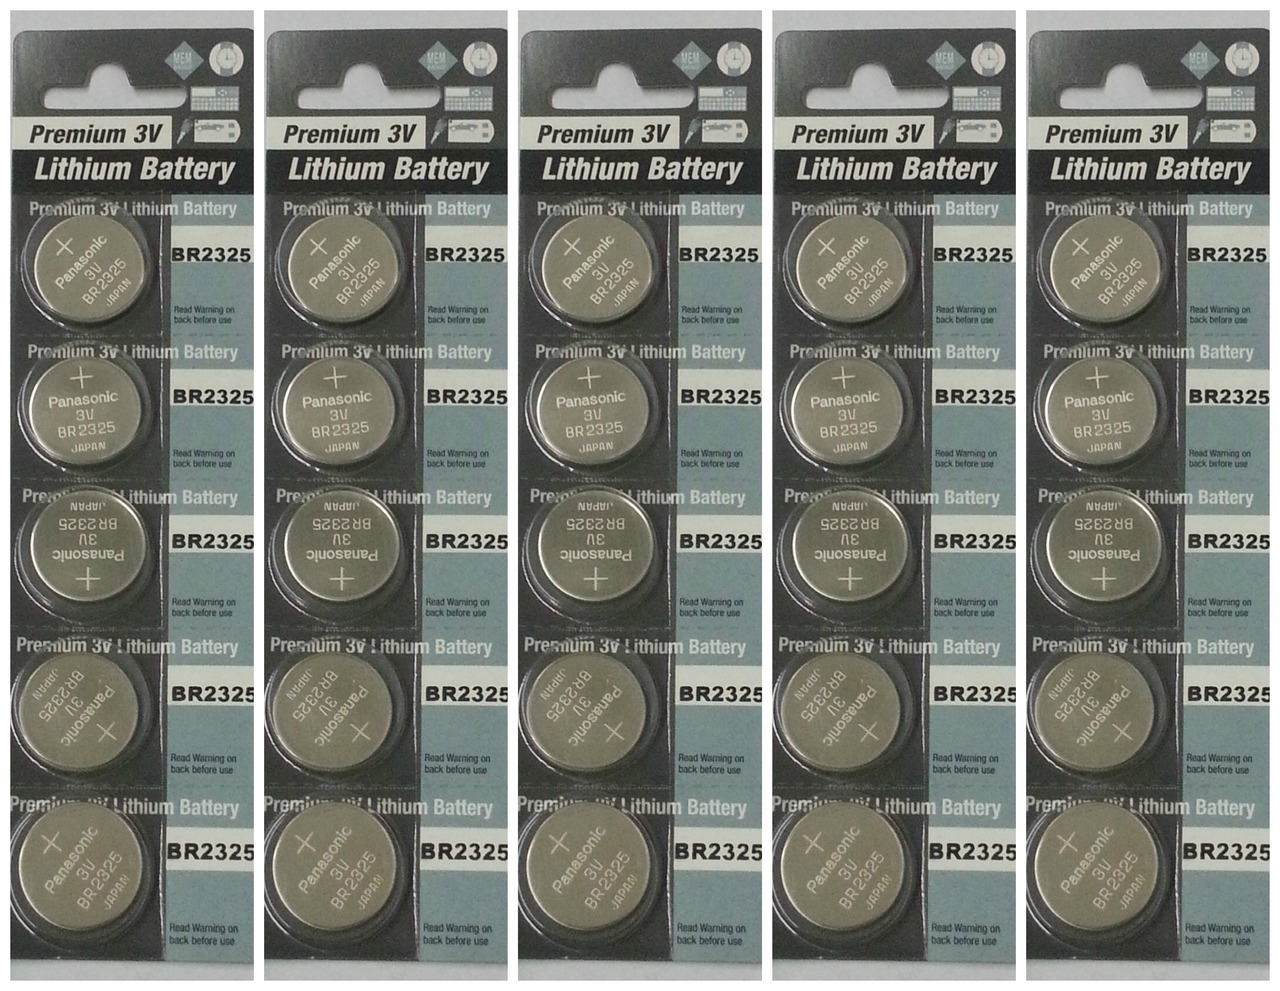 Panasonic BR2325 3V Lithium Coin Battery - 25 Pack + FREE SHIPPING!